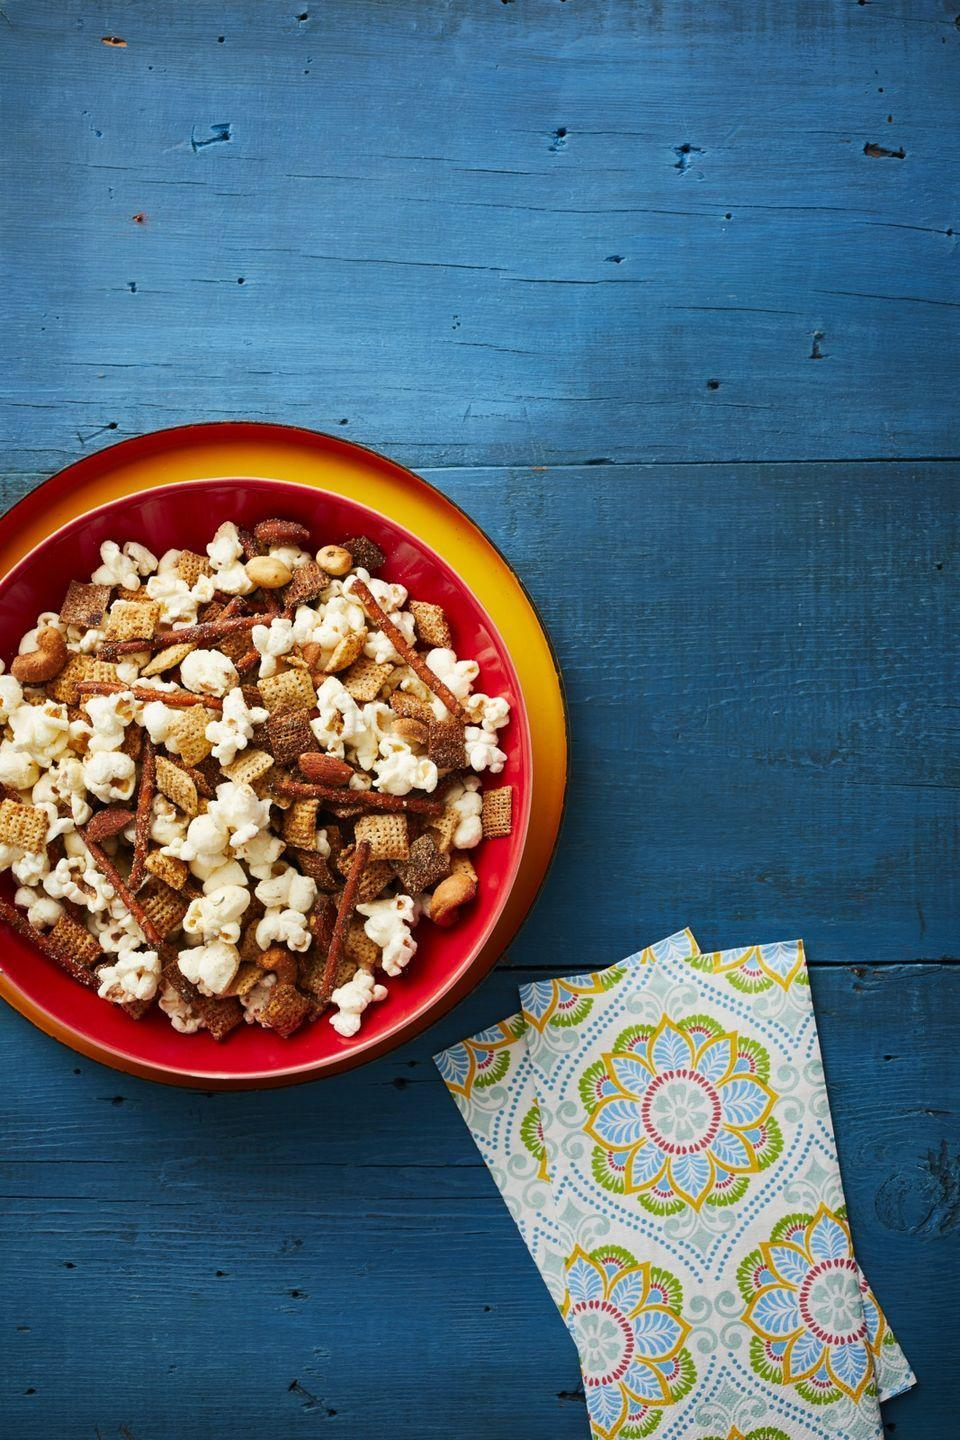 """<p>It's always smart to have a classic snack mix on hand at a party. This garlic and ranch one will be a hit—and the bowl will likely be empty in 10 minutes.</p><p><strong><a href=""""https://www.thepioneerwoman.com/food-cooking/recipes/a32257430/garlic-ranch-party-mix-recipe/"""" rel=""""nofollow noopener"""" target=""""_blank"""" data-ylk=""""slk:Get the recipe."""" class=""""link rapid-noclick-resp"""">Get the recipe.</a></strong></p><p><strong><a class=""""link rapid-noclick-resp"""" href=""""https://go.redirectingat.com?id=74968X1596630&url=https%3A%2F%2Fwww.walmart.com%2Fsearch%2F%3Fquery%3Dpioneer%2Bwoman%2Bserving%2Bbowls&sref=https%3A%2F%2Fwww.thepioneerwoman.com%2Ffood-cooking%2Fmeals-menus%2Fg34272733%2Fchristmas-party-appetizers%2F"""" rel=""""nofollow noopener"""" target=""""_blank"""" data-ylk=""""slk:SHOP SERVING BOWLS"""">SHOP SERVING BOWLS</a><br></strong></p>"""